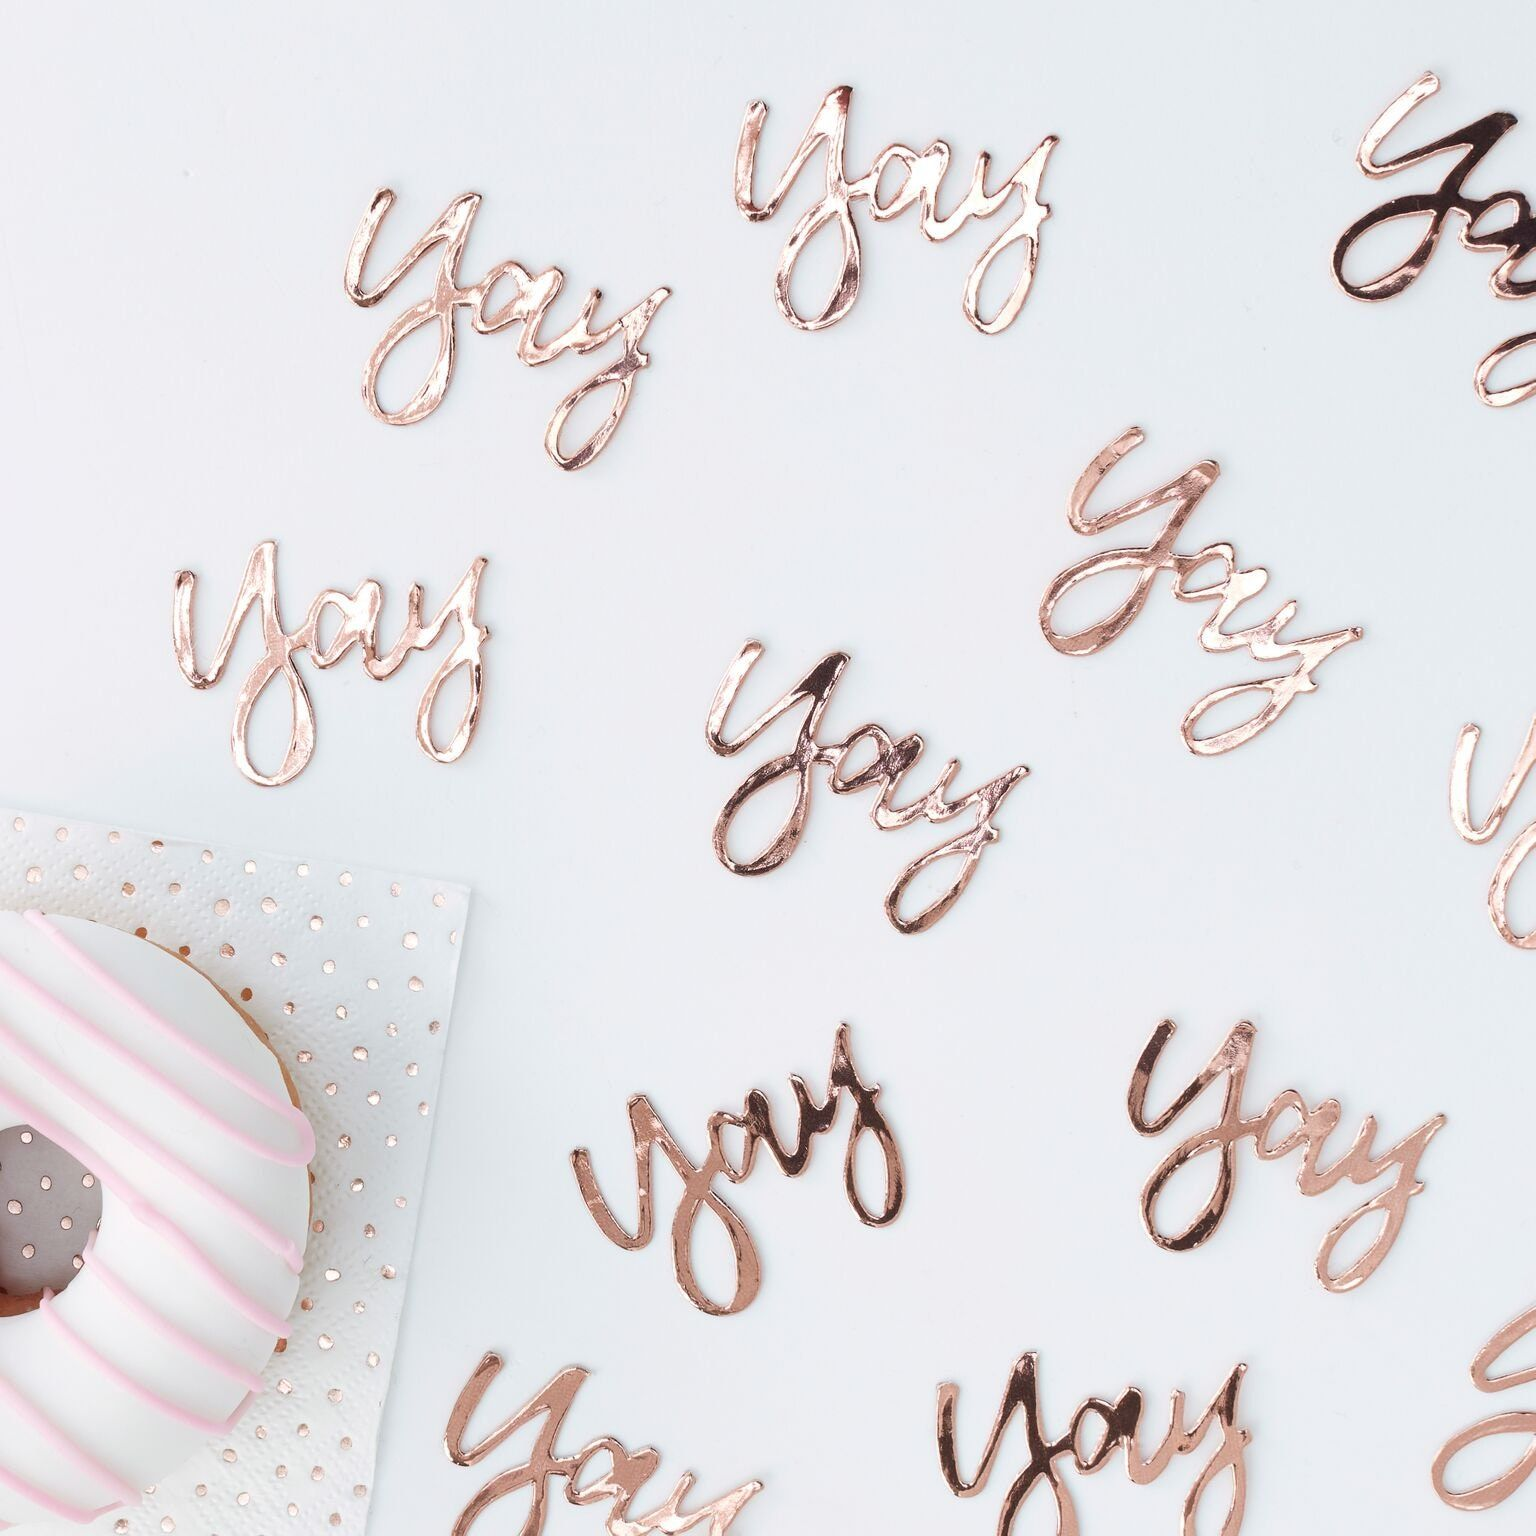 Rose Gold Plates These stylish rose gold plates are perfect for birthdays or any special celebrations! Mix and match to create the perfect party setup. The rose gold design can be used for all occasions and sure to be loved by everyone. The rose foiling will shine bright around your room. Mix with the rest of our Pick & Mix range for a perfect party set up. Each pack includes 8 paper plates. Each plate measures: 25cm (Diameter). Combined shipping available, please contact me for details.